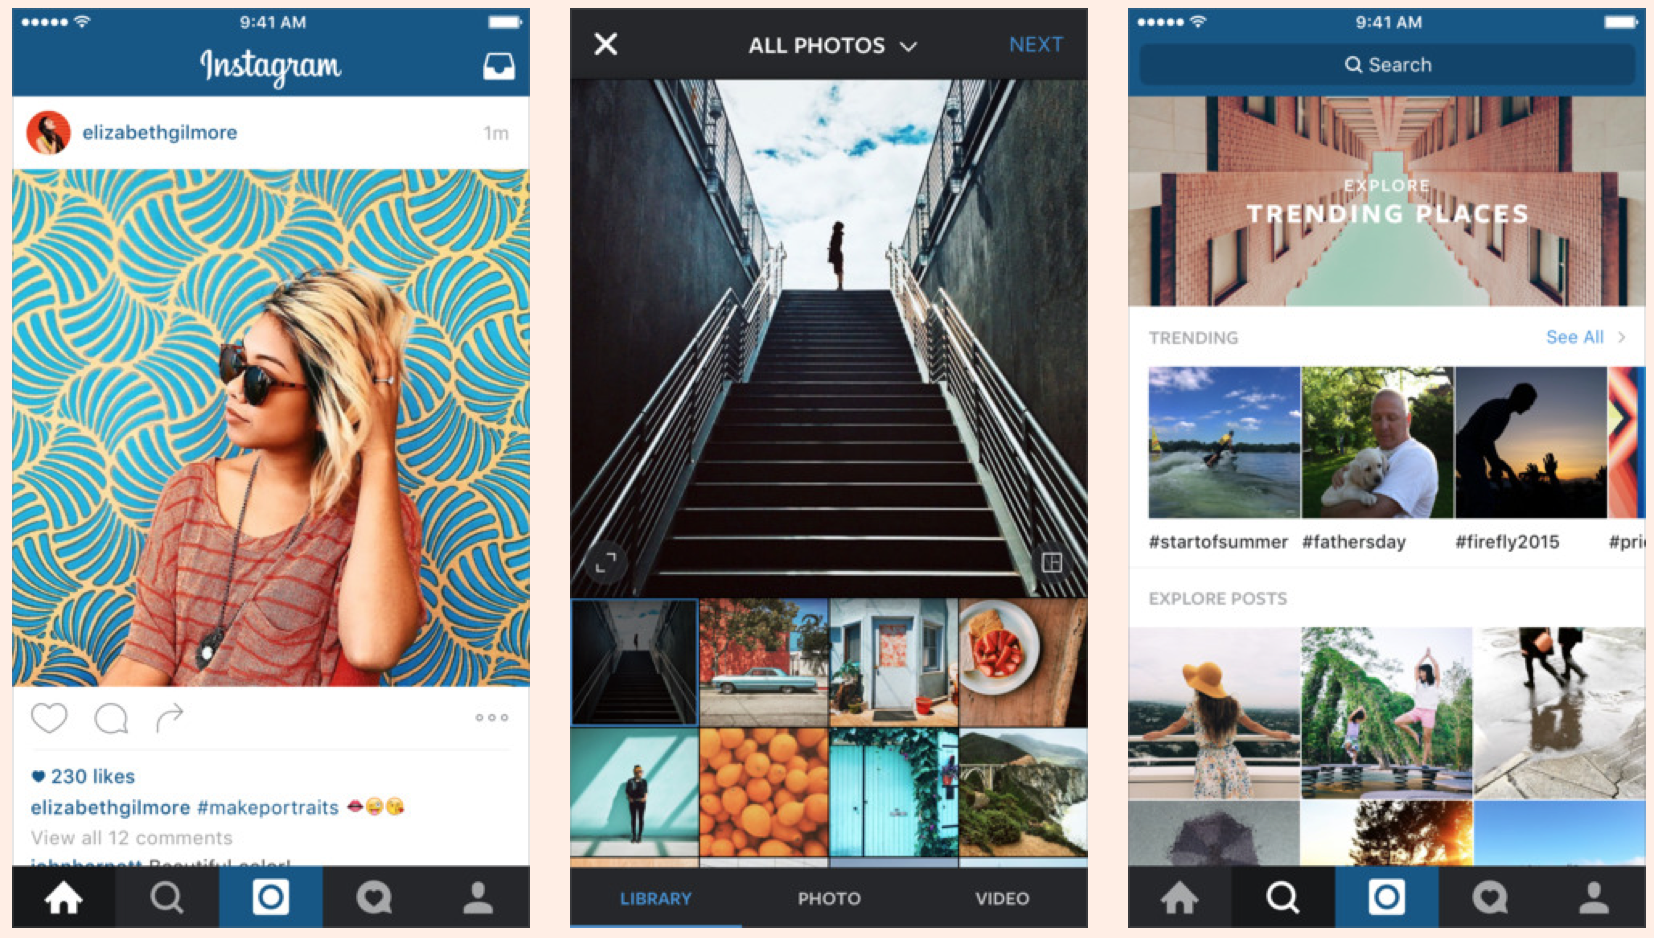 Feed Instagram: Instagram Is Changing Its Feed Order To Show You Posts You